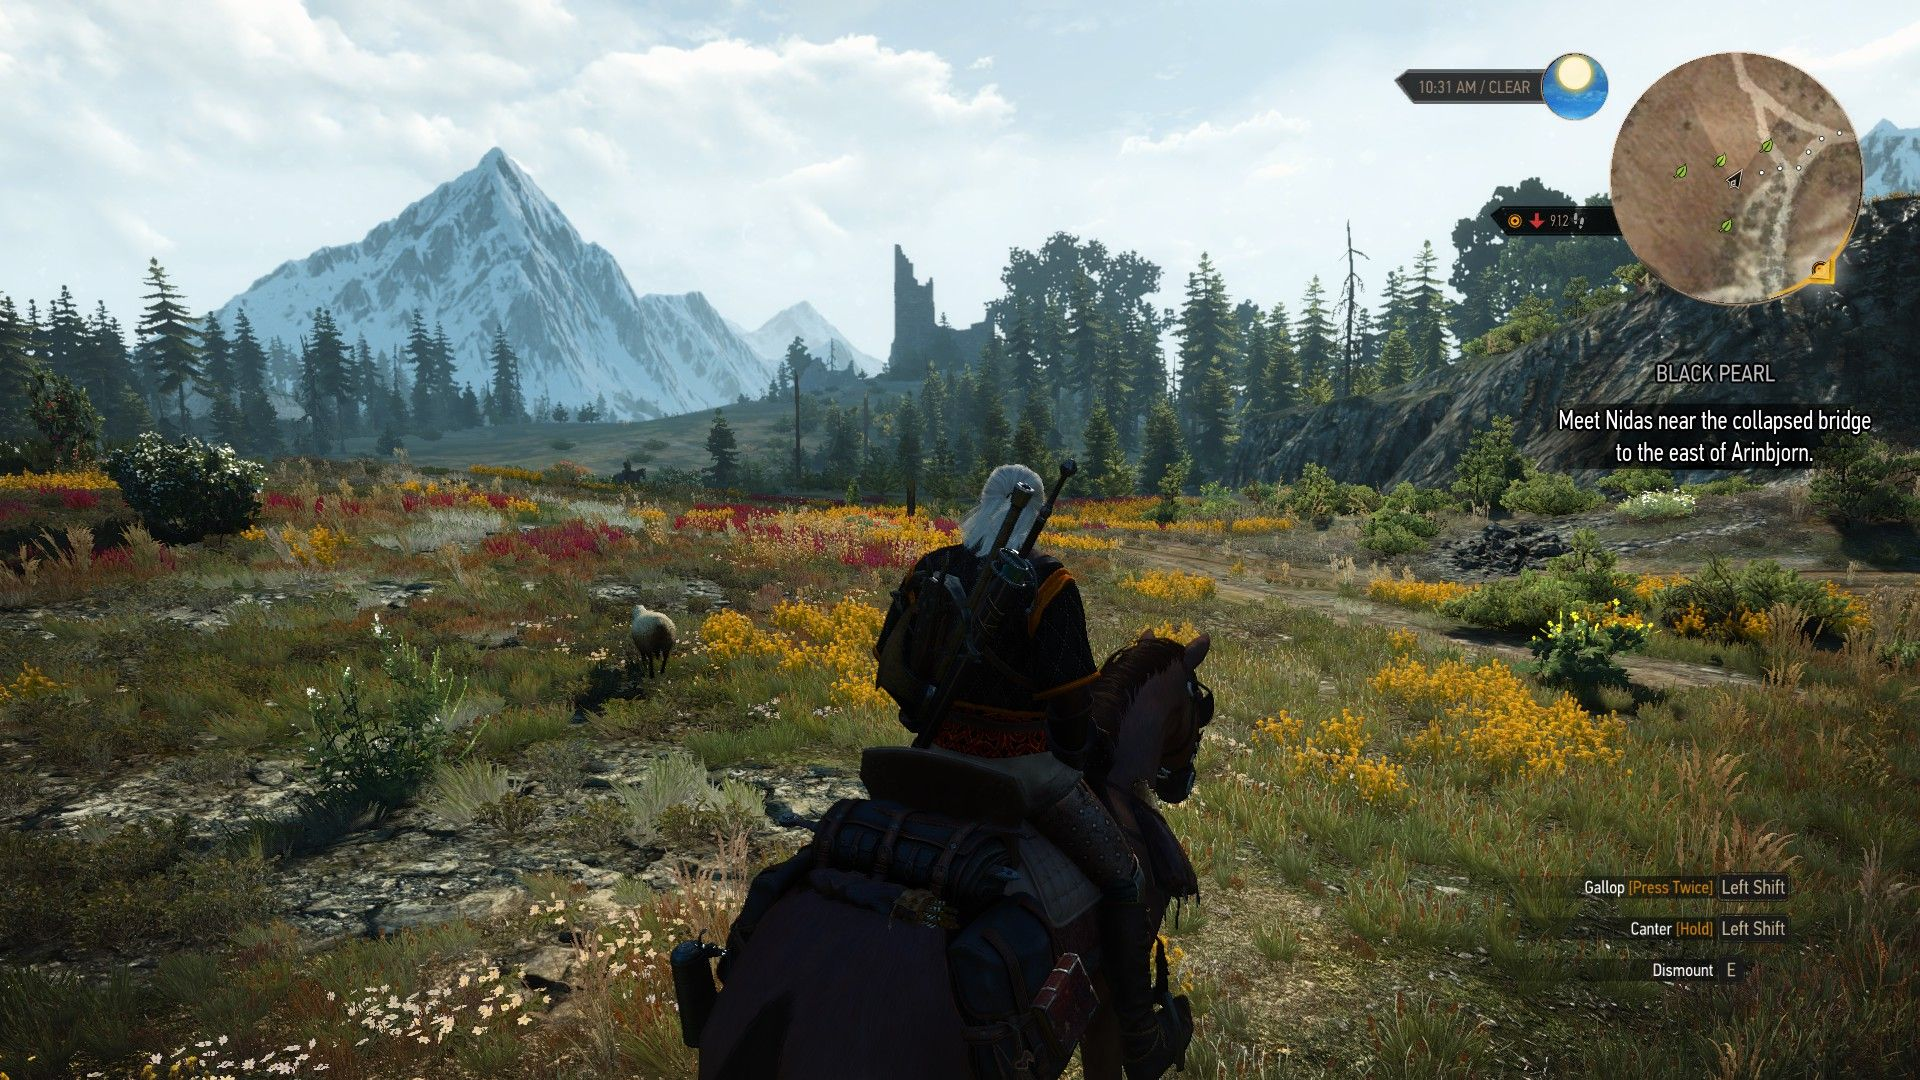 witcher3pc 05 Cyberpunk 2077 Could Blow Witcher 3 Out Of The Water, Dev Says